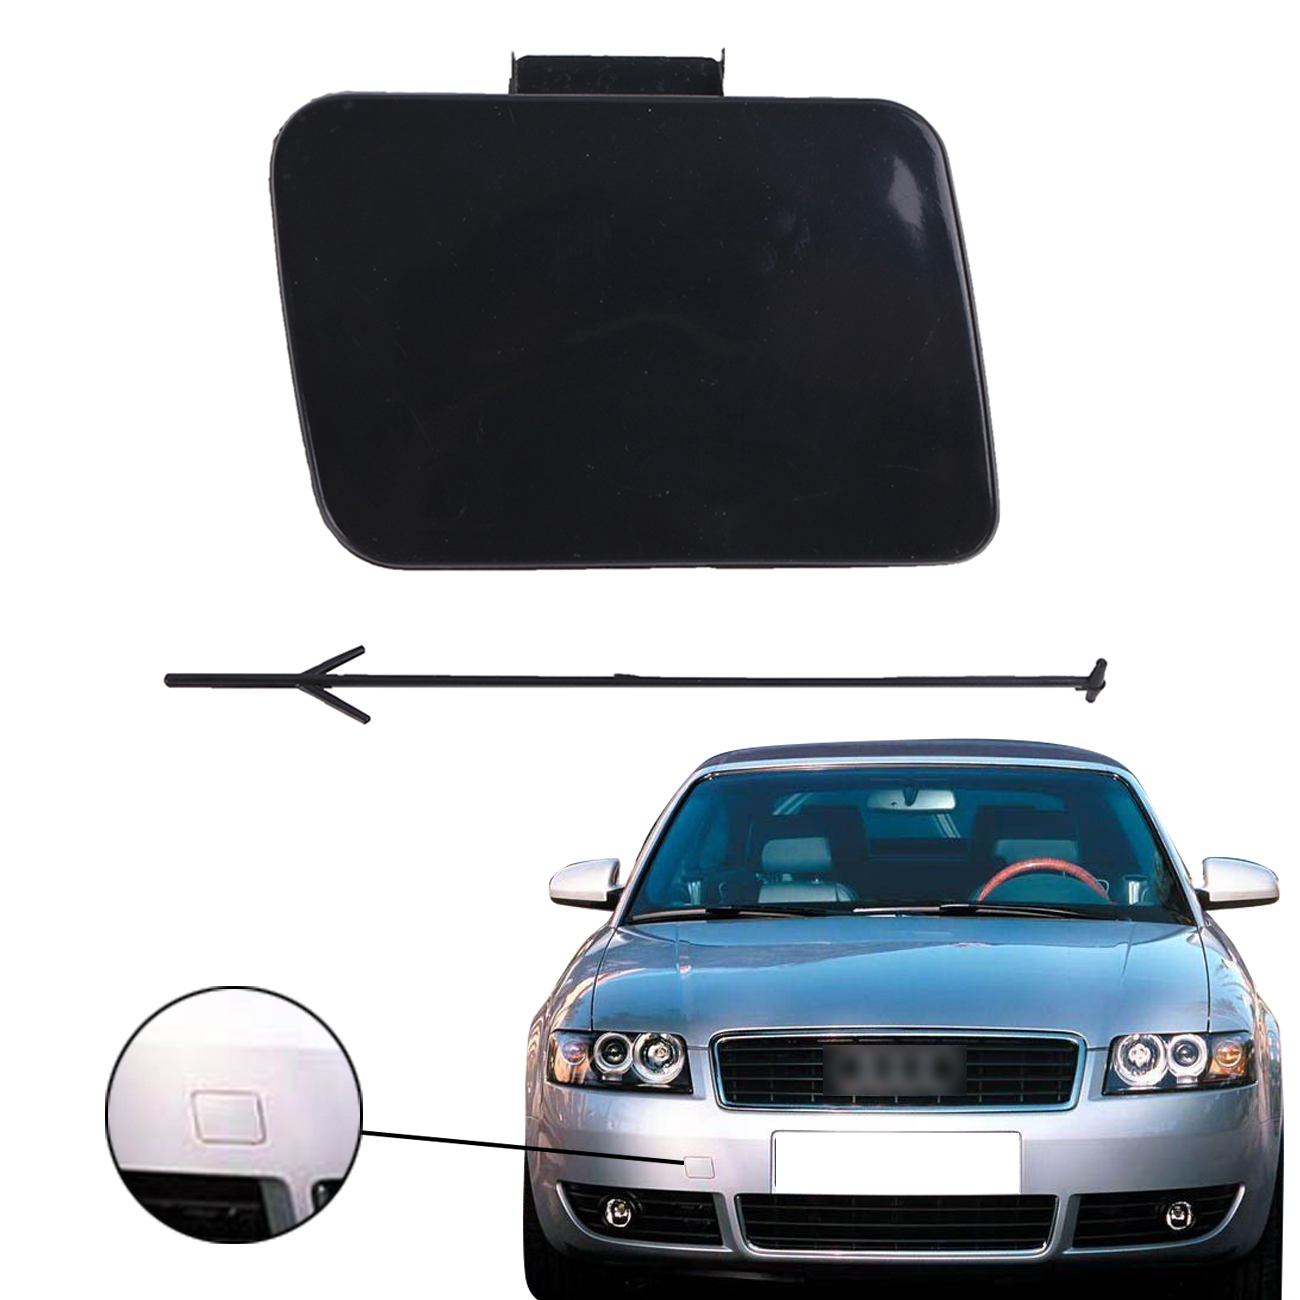 For Audi A4 B6 S4 Quattro Avant S Line Car Front Bumper Towing Hook Eye Cover Cap with Tie 2002 2003 2004 2005 8E0807241 #PD523